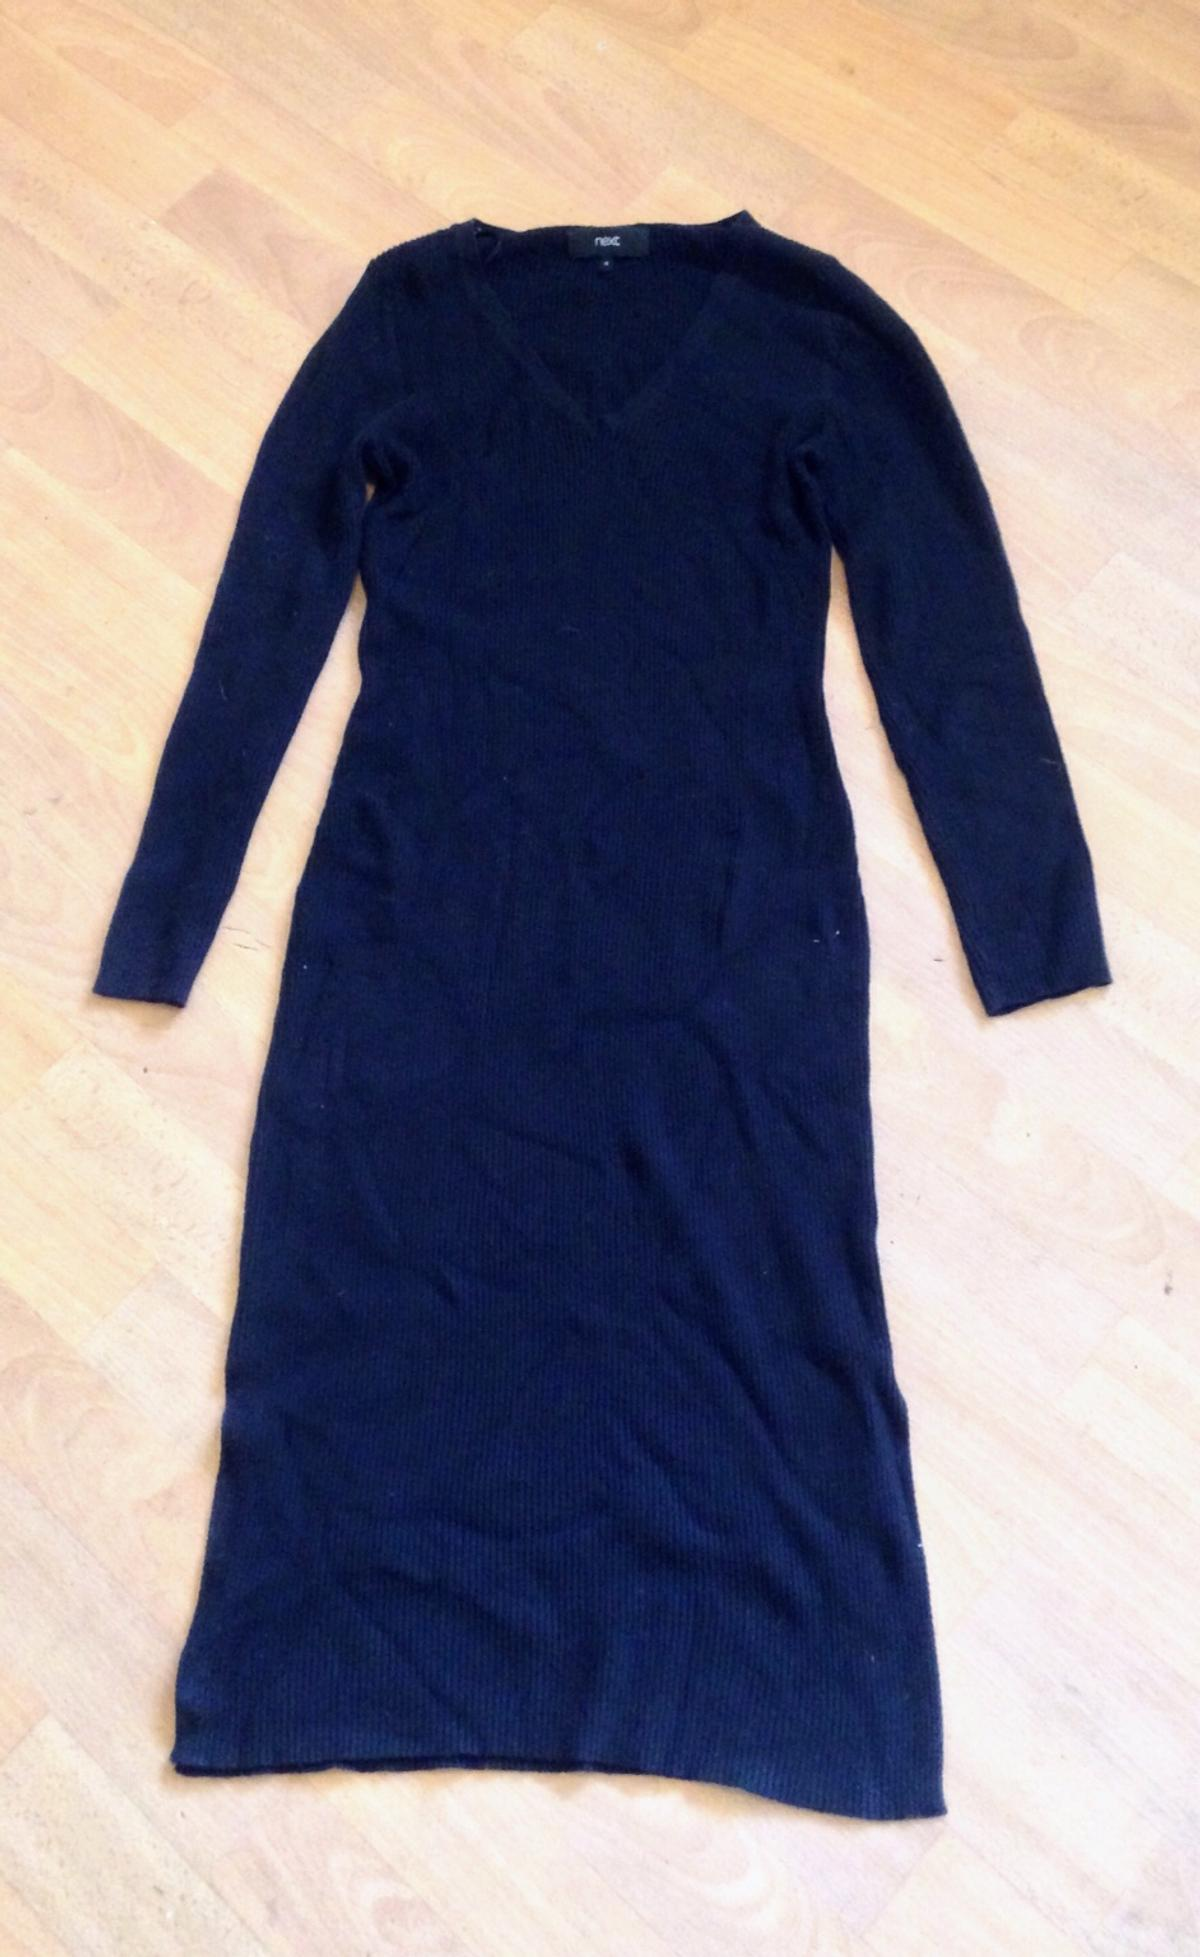 Just above ankle length stretchy dress